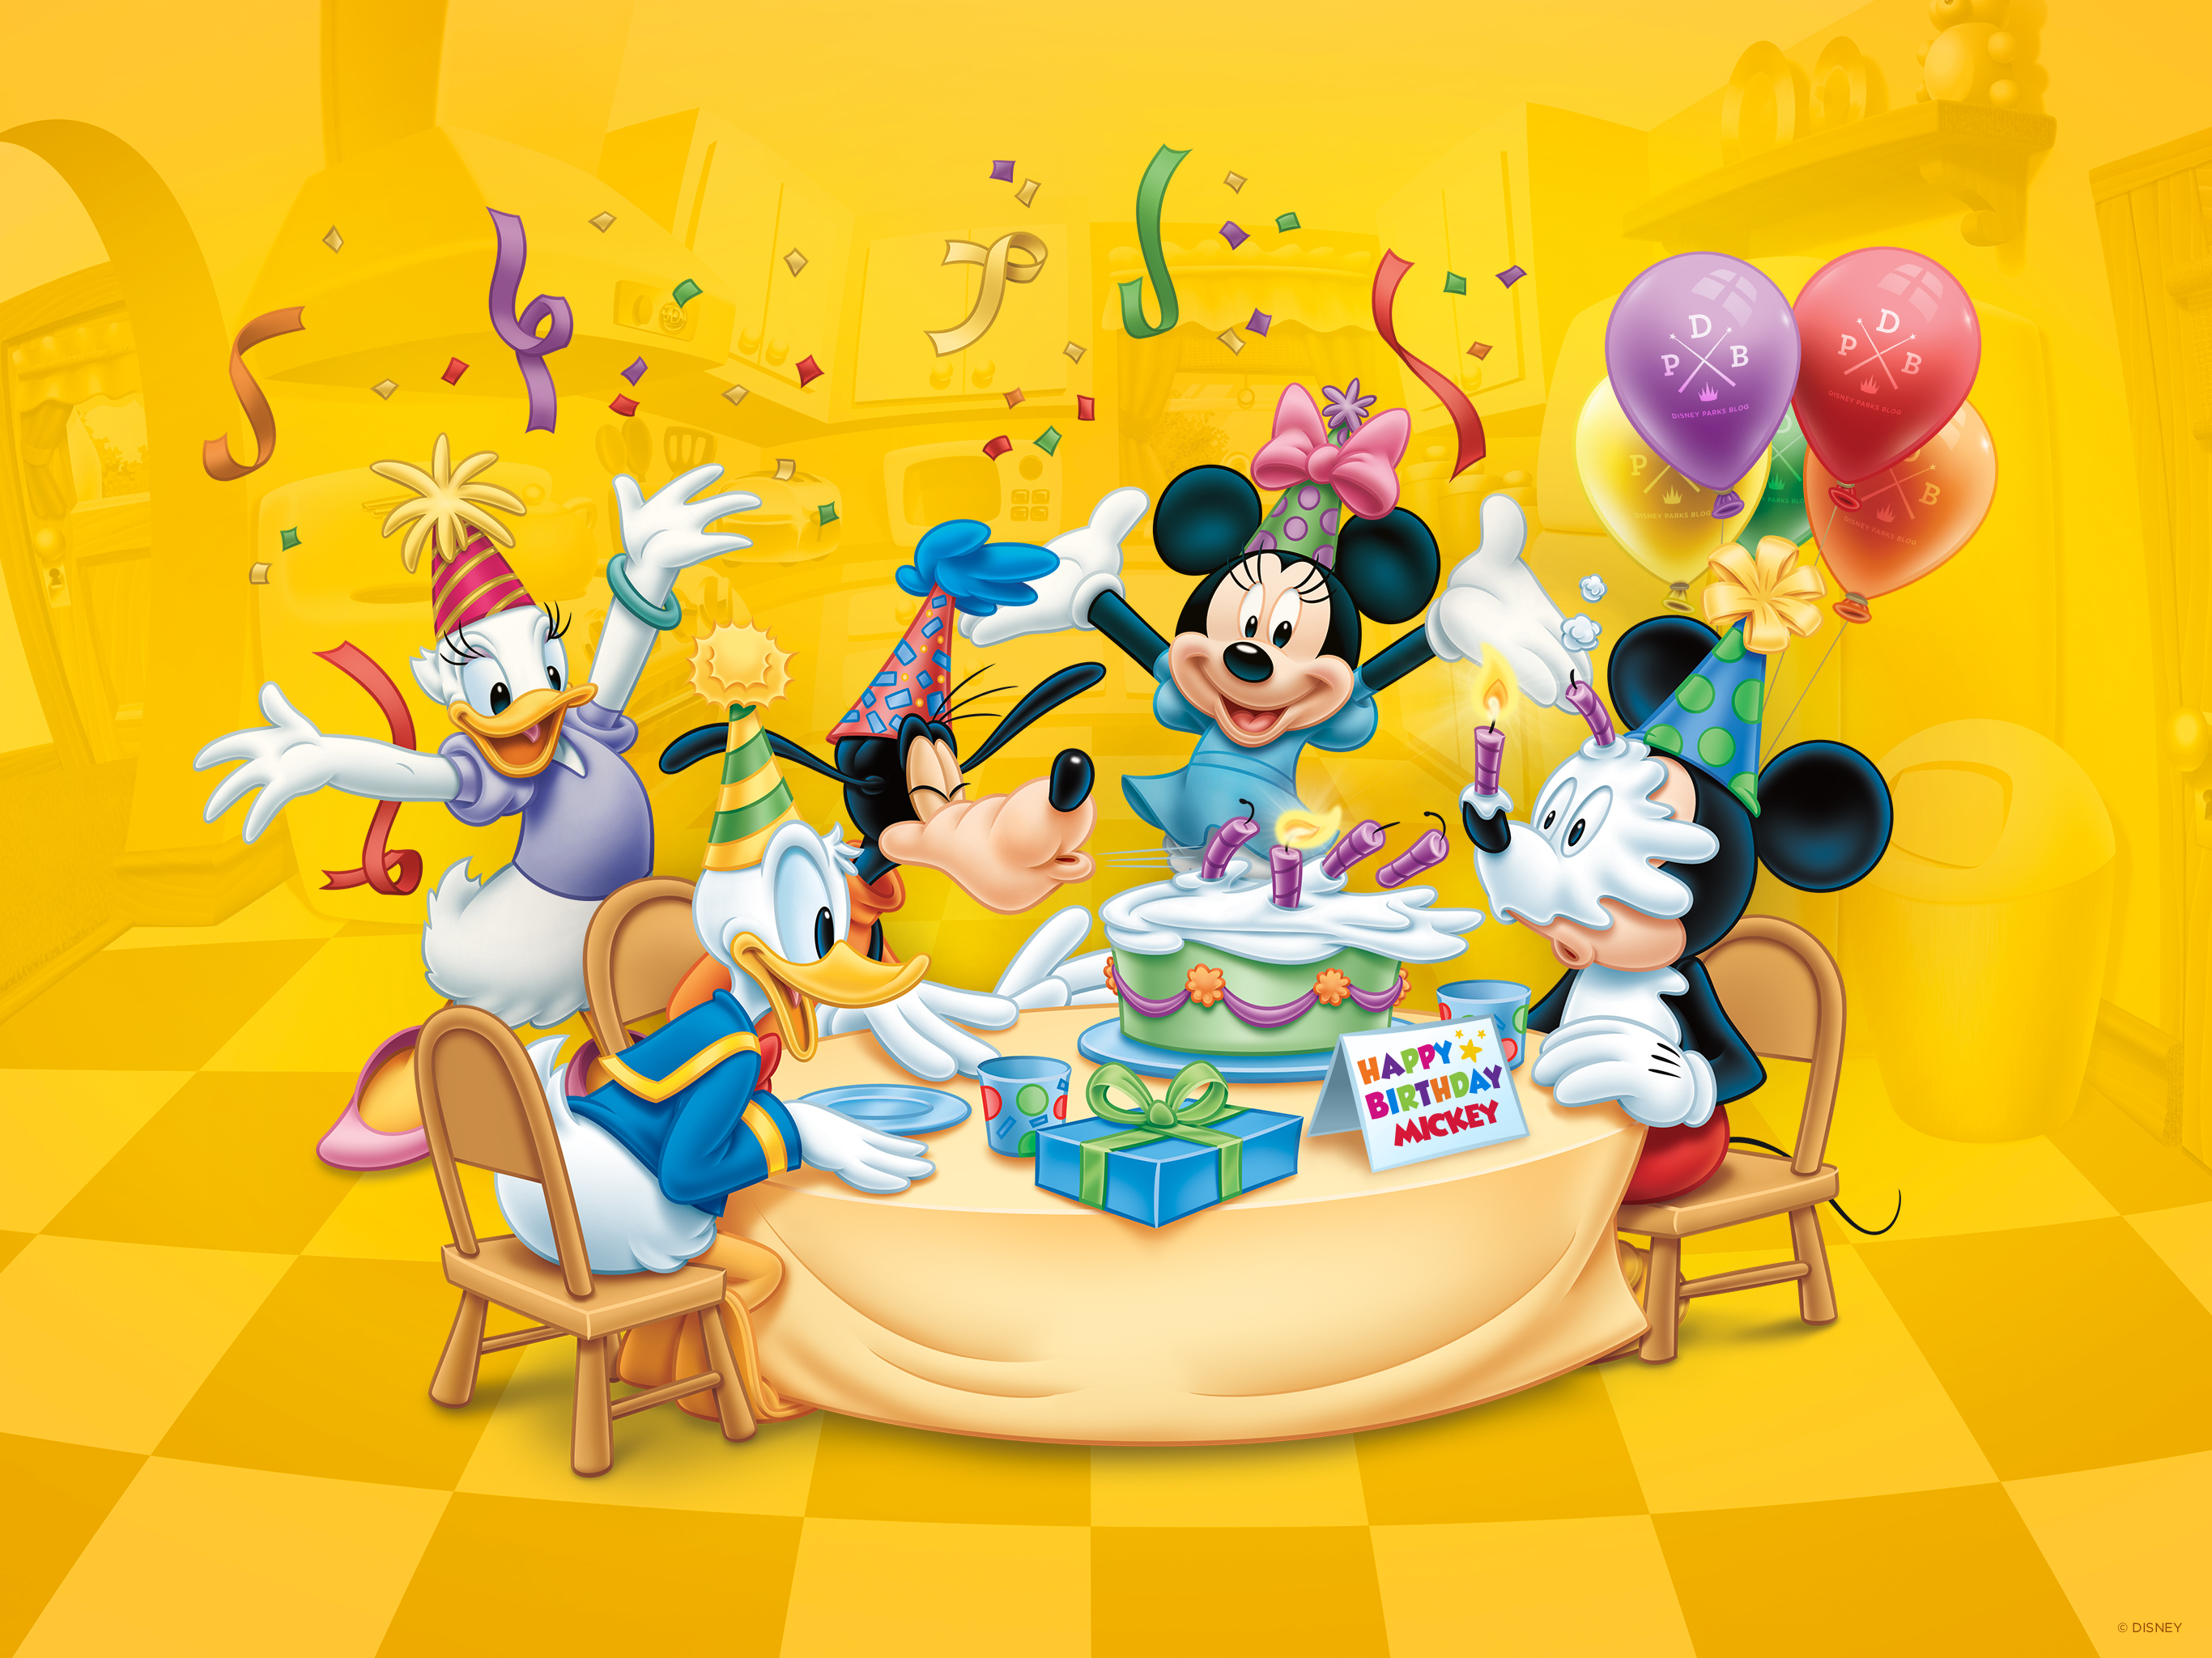 Happy Birthday Mickey! | Disney Parks Blog